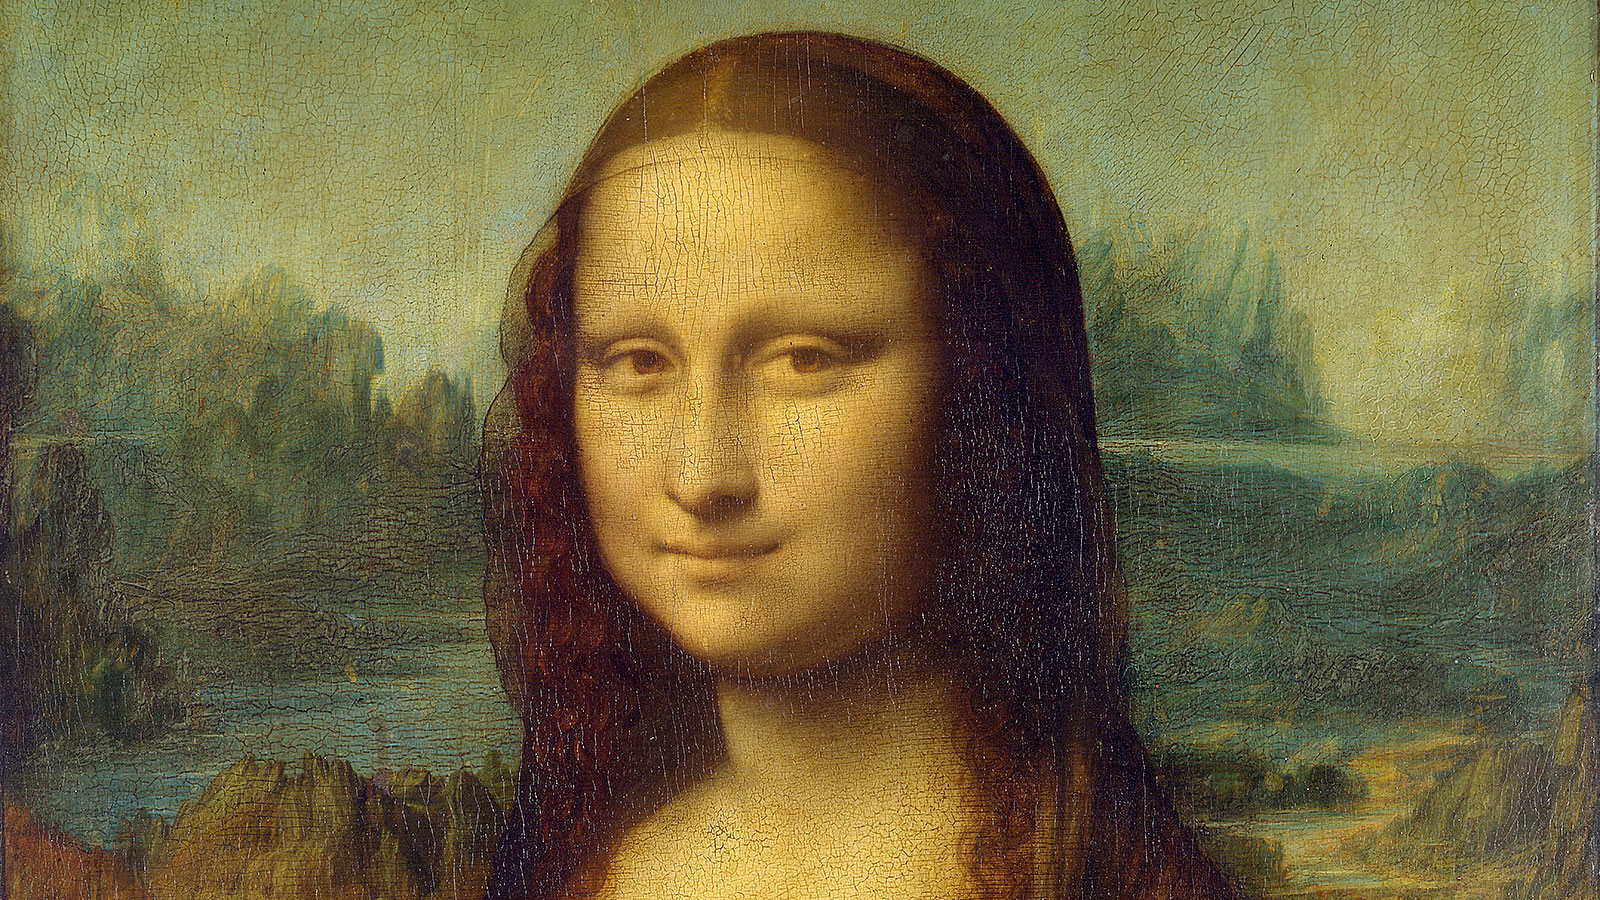 Was Mona Lisa actually smiling? Researchers say no